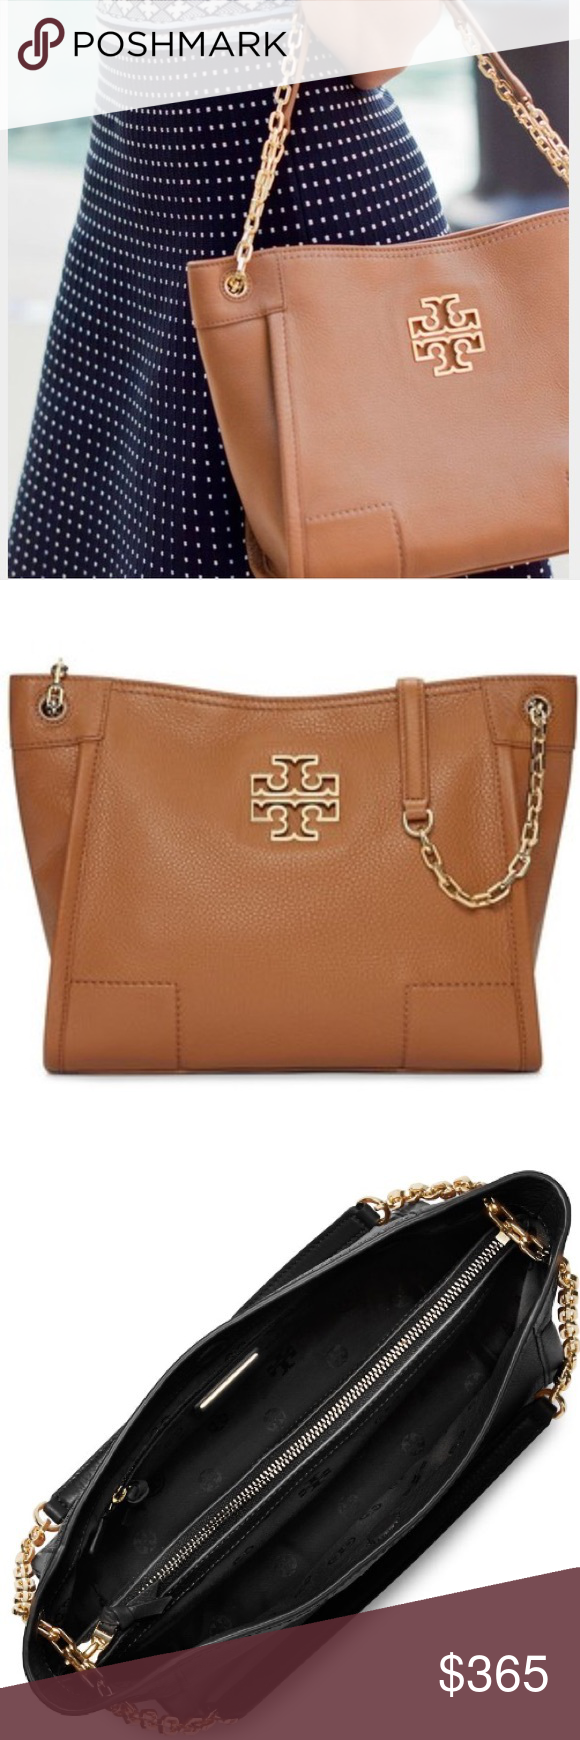 988ed7634f67 NWT 💯 AUTH Tory Burch Britten Slouchy Tote Ships Nov 19! Brand new with tag